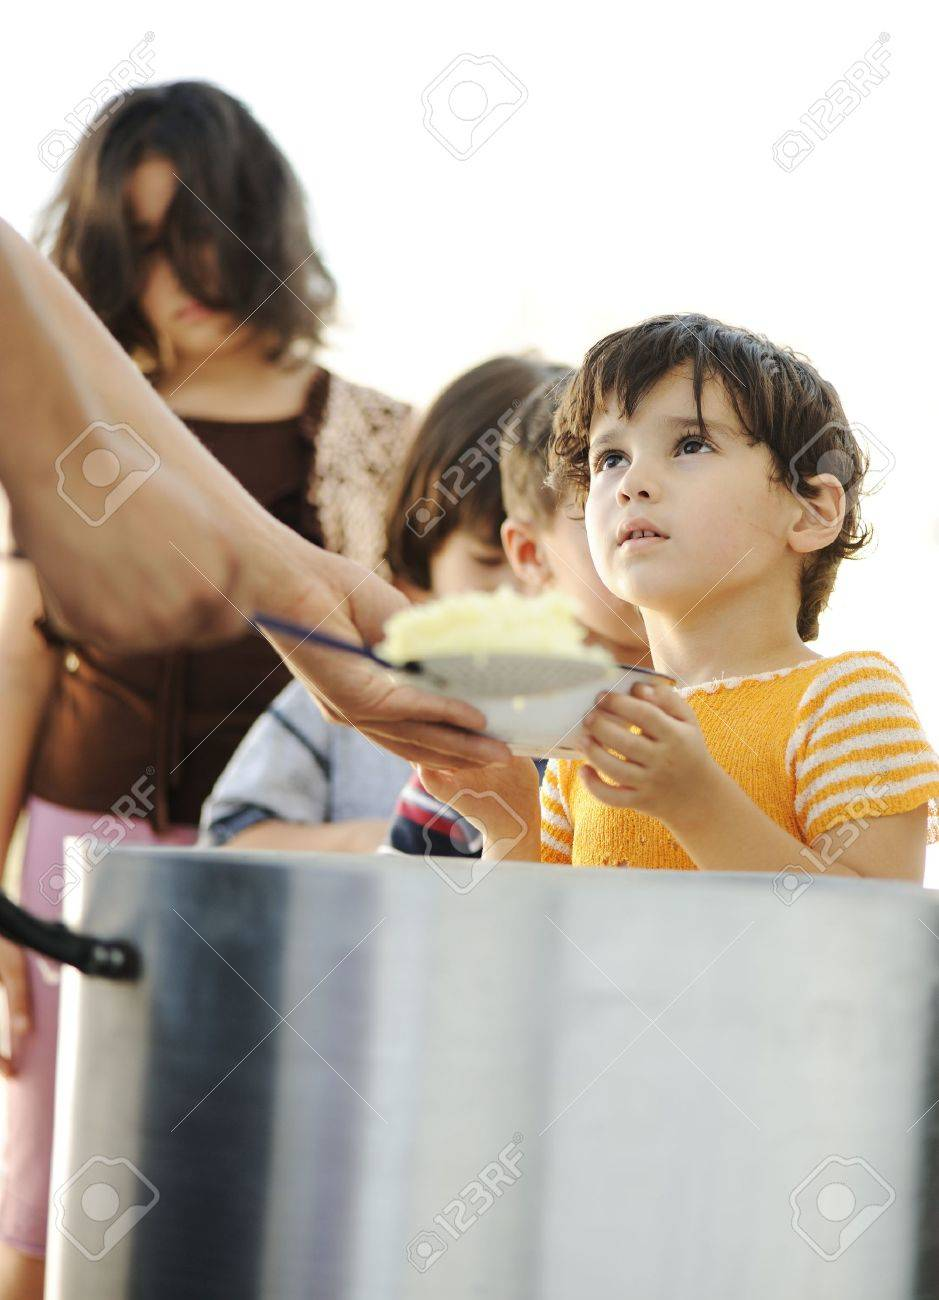 Hungry children in refugee camp, distribution of humanitarian food Stock Photo - 10680493